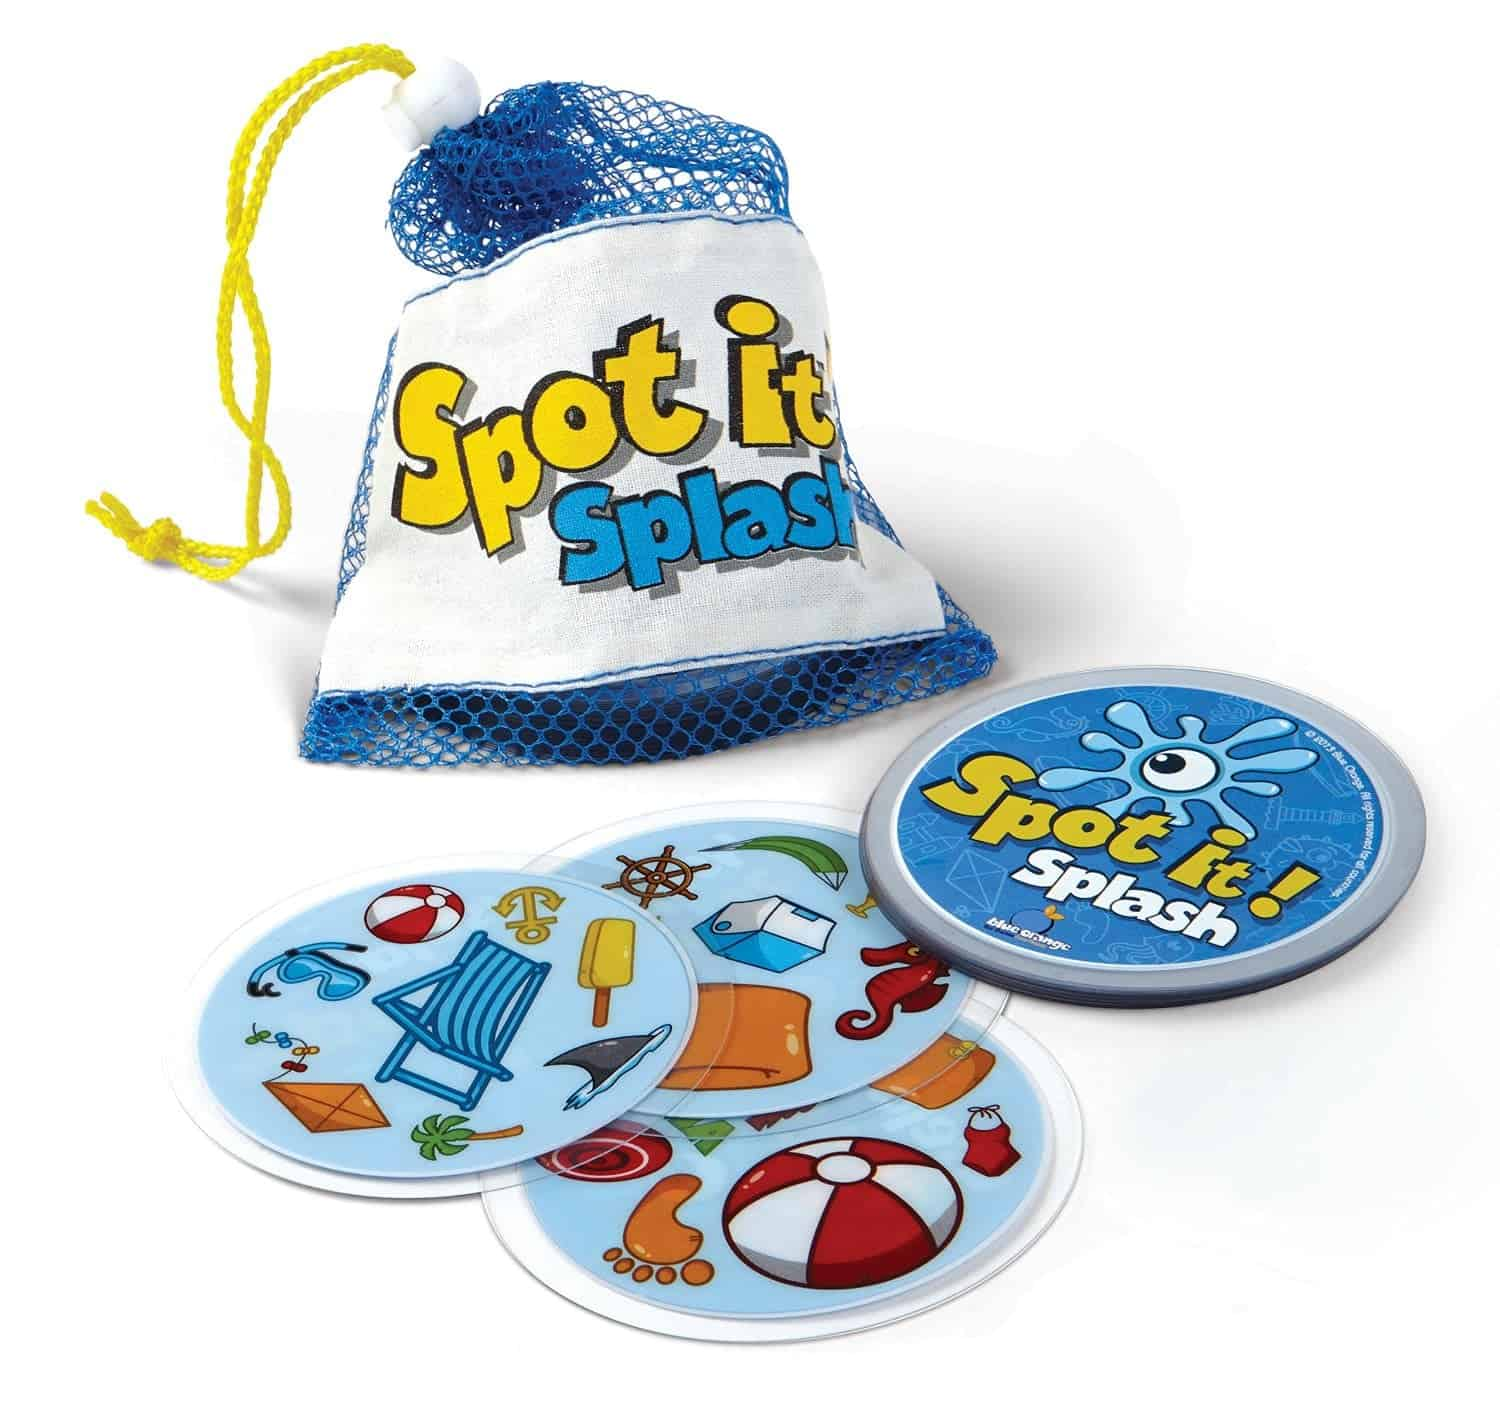 10+ Best Games and Toys for a Fun Day at the Beach: Spot It Splash| www.thepinningmama.com